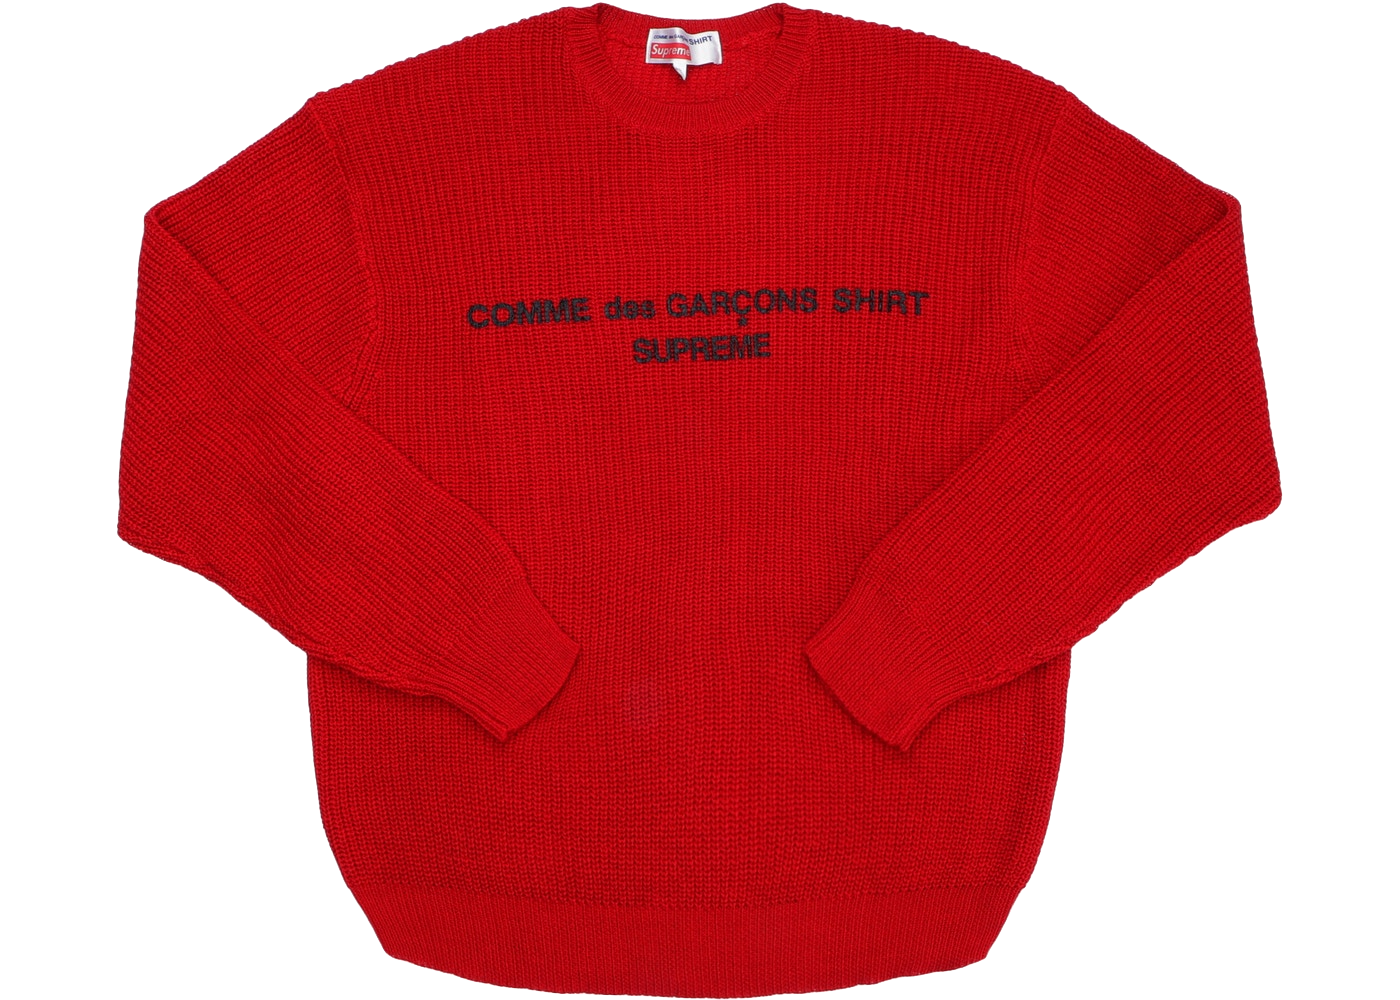 Supreme Comme des Garcons SHIRT Sweater Red - Baza